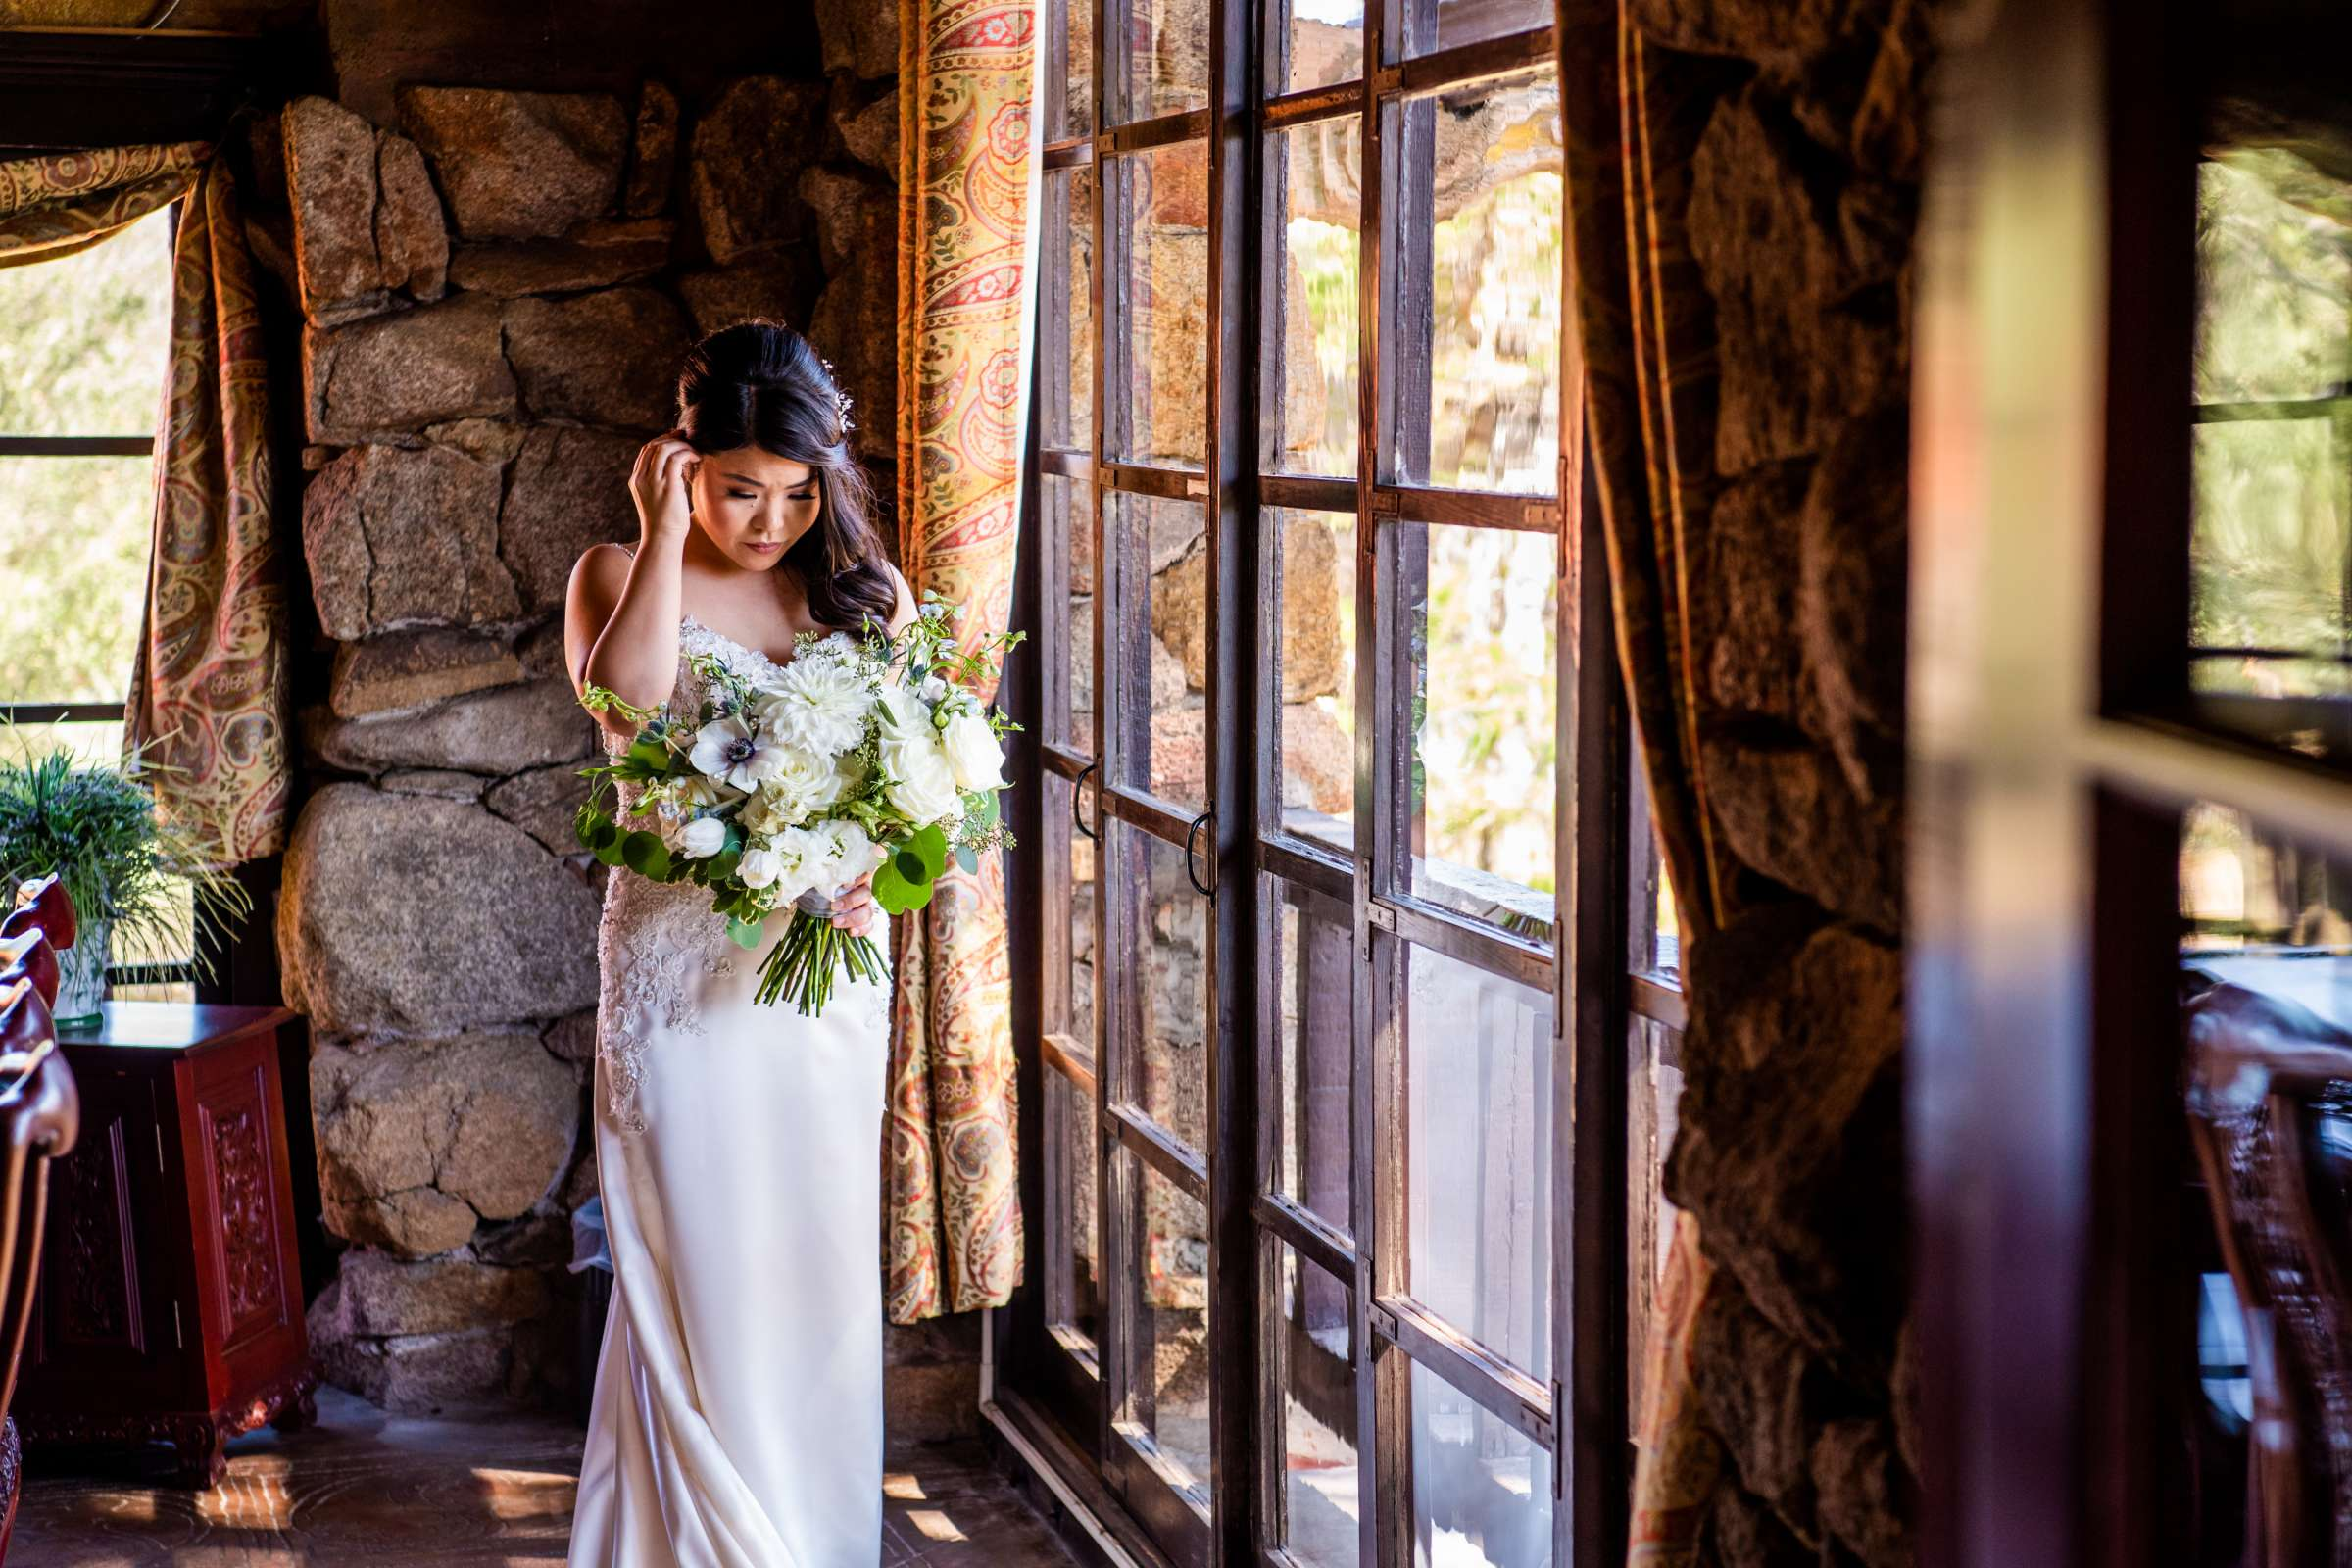 Mt Woodson Castle Wedding coordinated by I Do Weddings, Aya and Jared Wedding Photo #486891 by True Photography